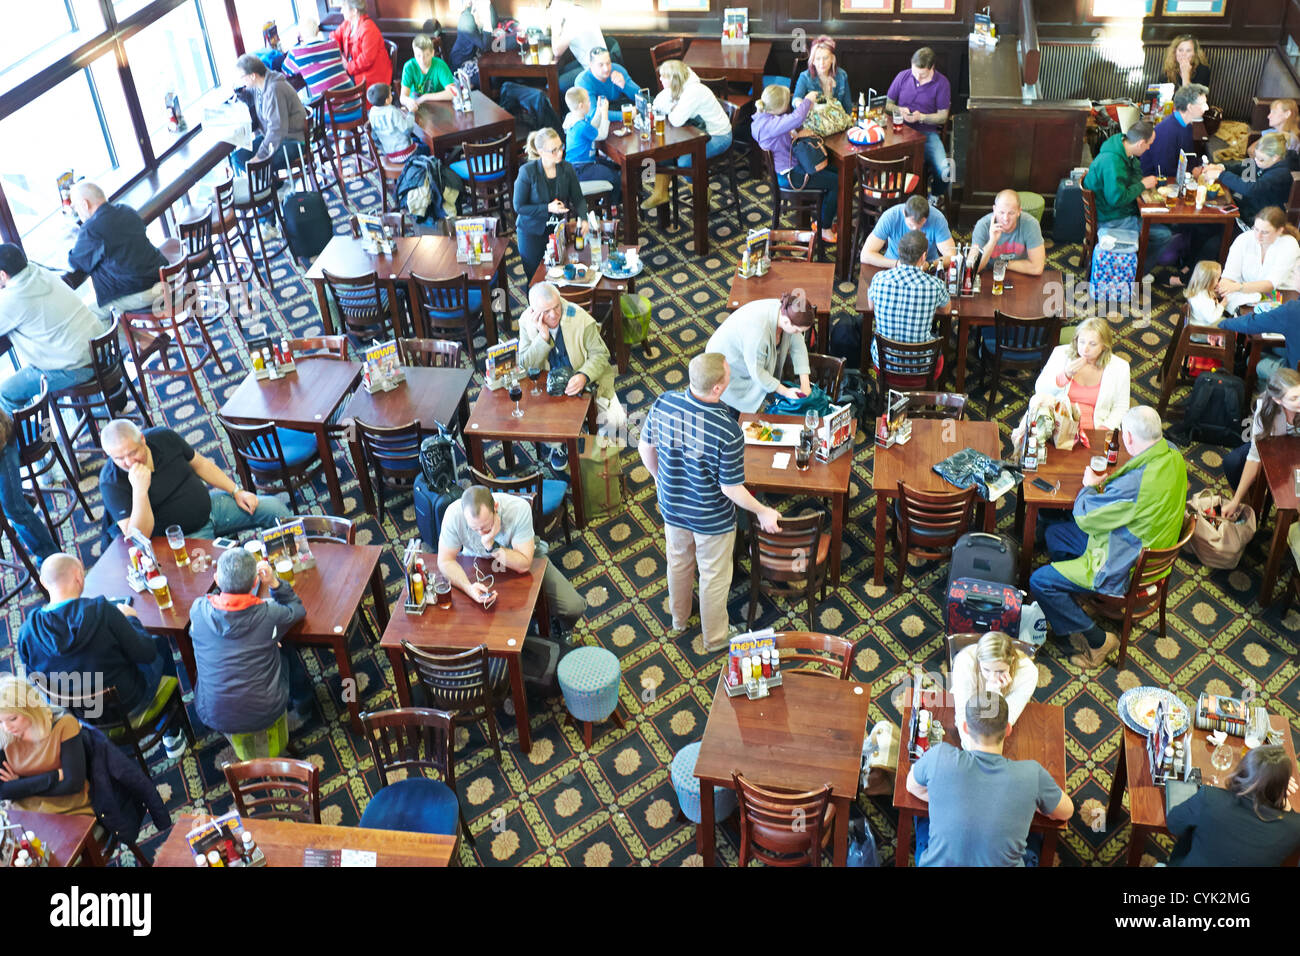 Passengers in the Red Lion bar, owned by JD Wetherspoons,  in the north terminal concourse at Gatwick Airport, London - Stock Image